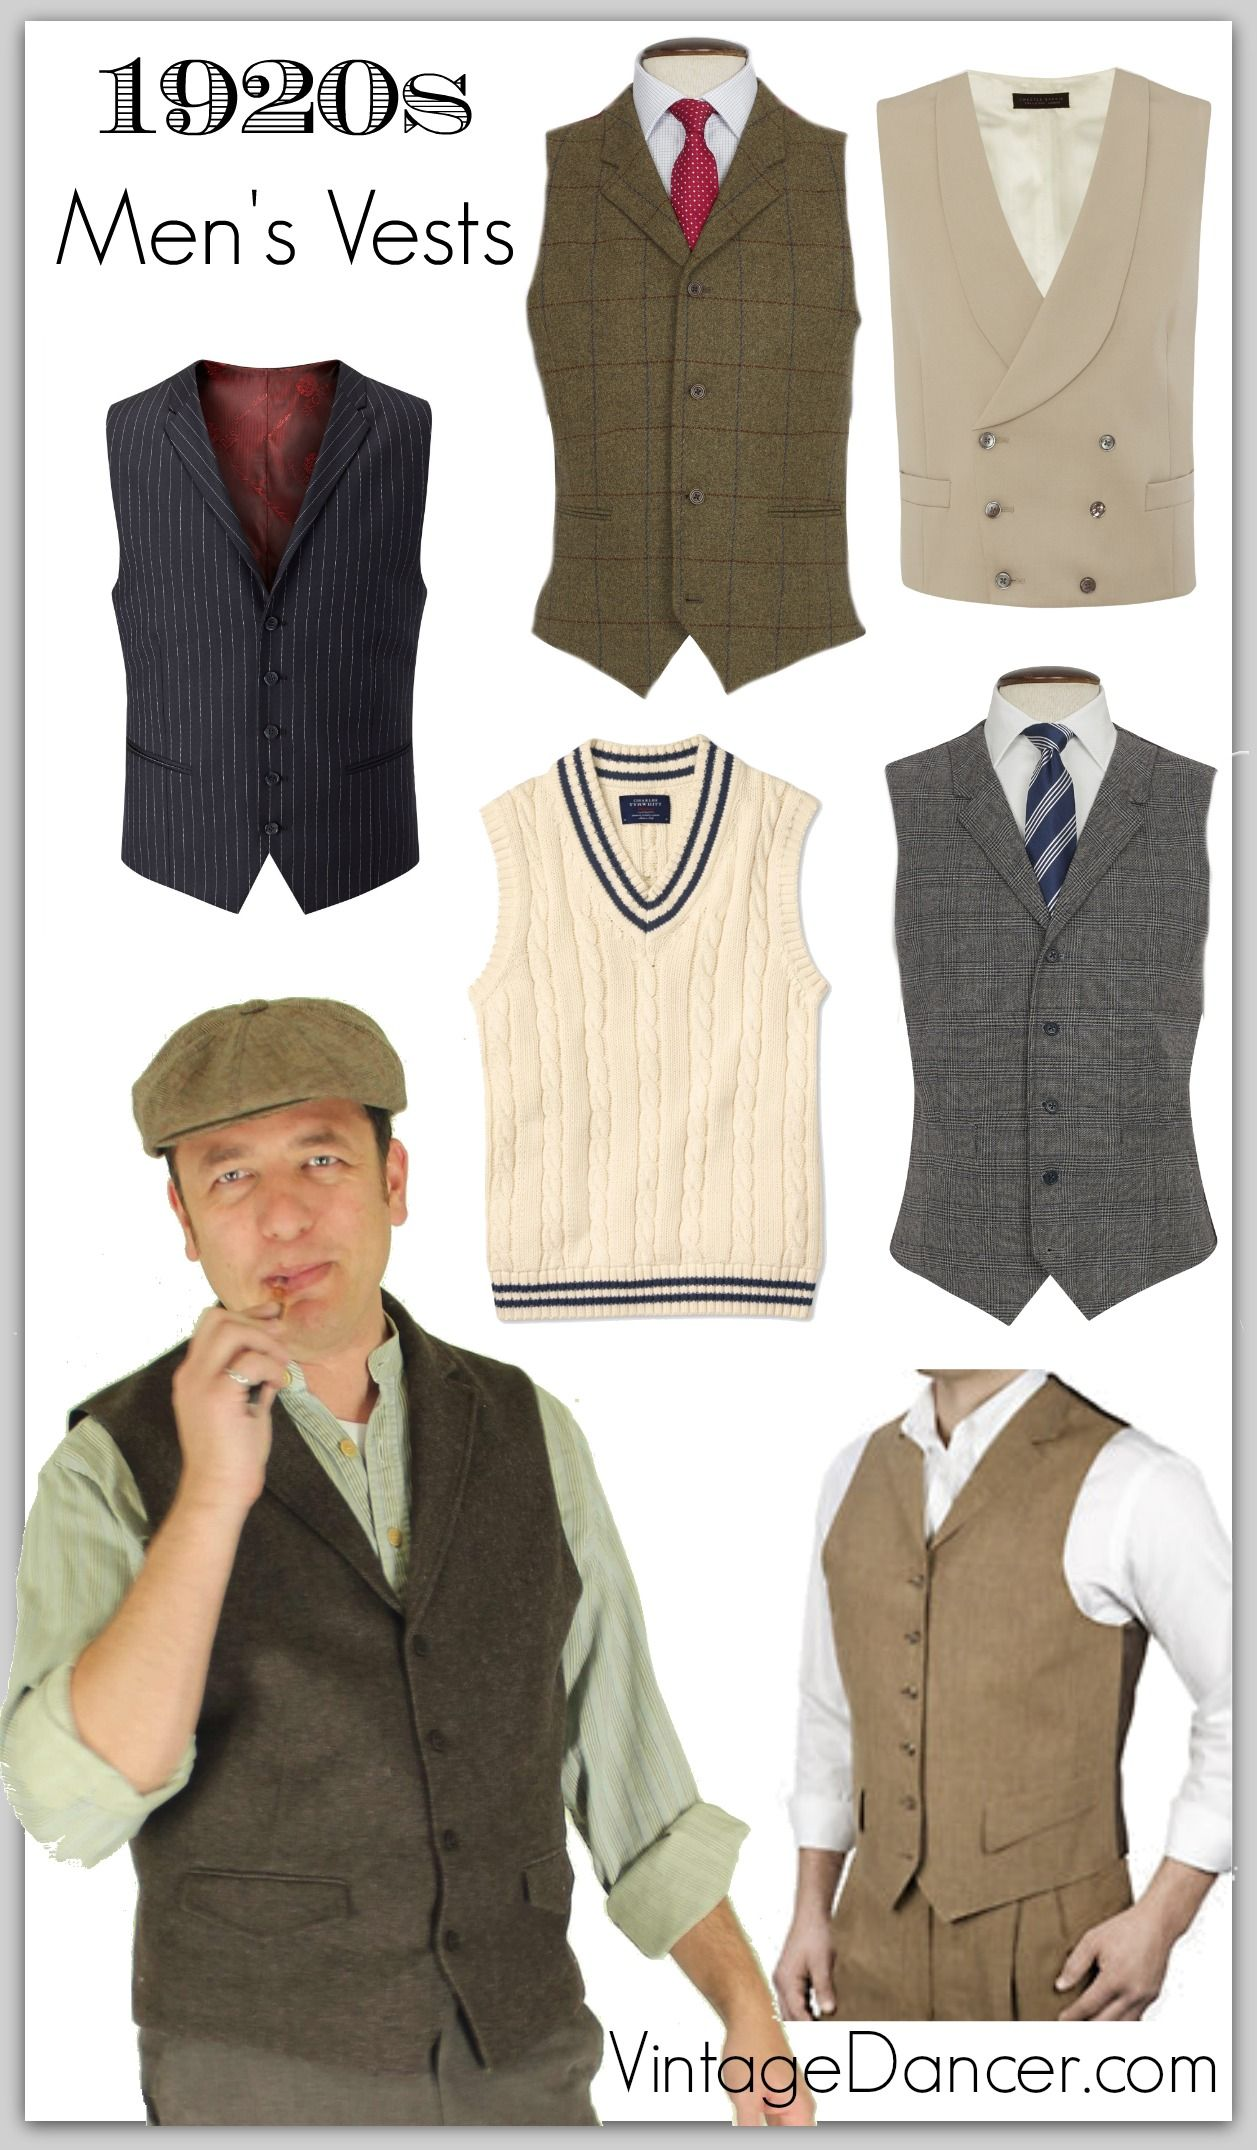 91342ef47 Roaring 20s, Great Gatsby, 1920s style men's vests and waistcoats at  Vintagedancer.com